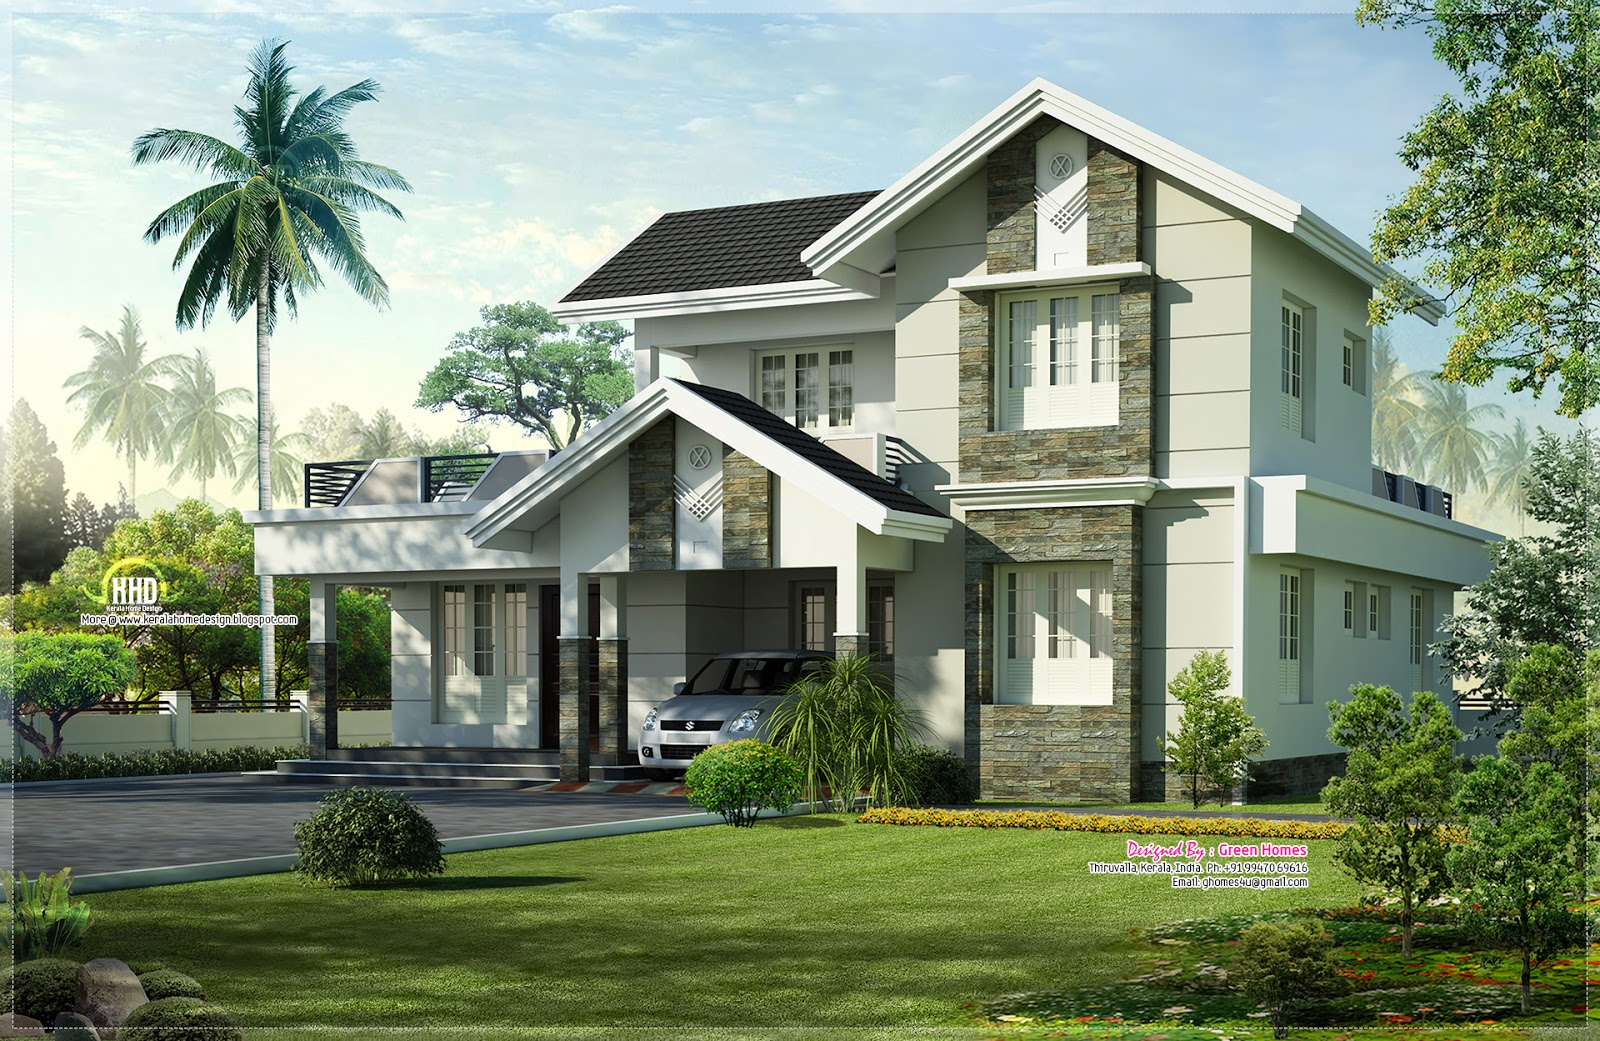 1975 nice home exterior design home kerala plans House and home designs